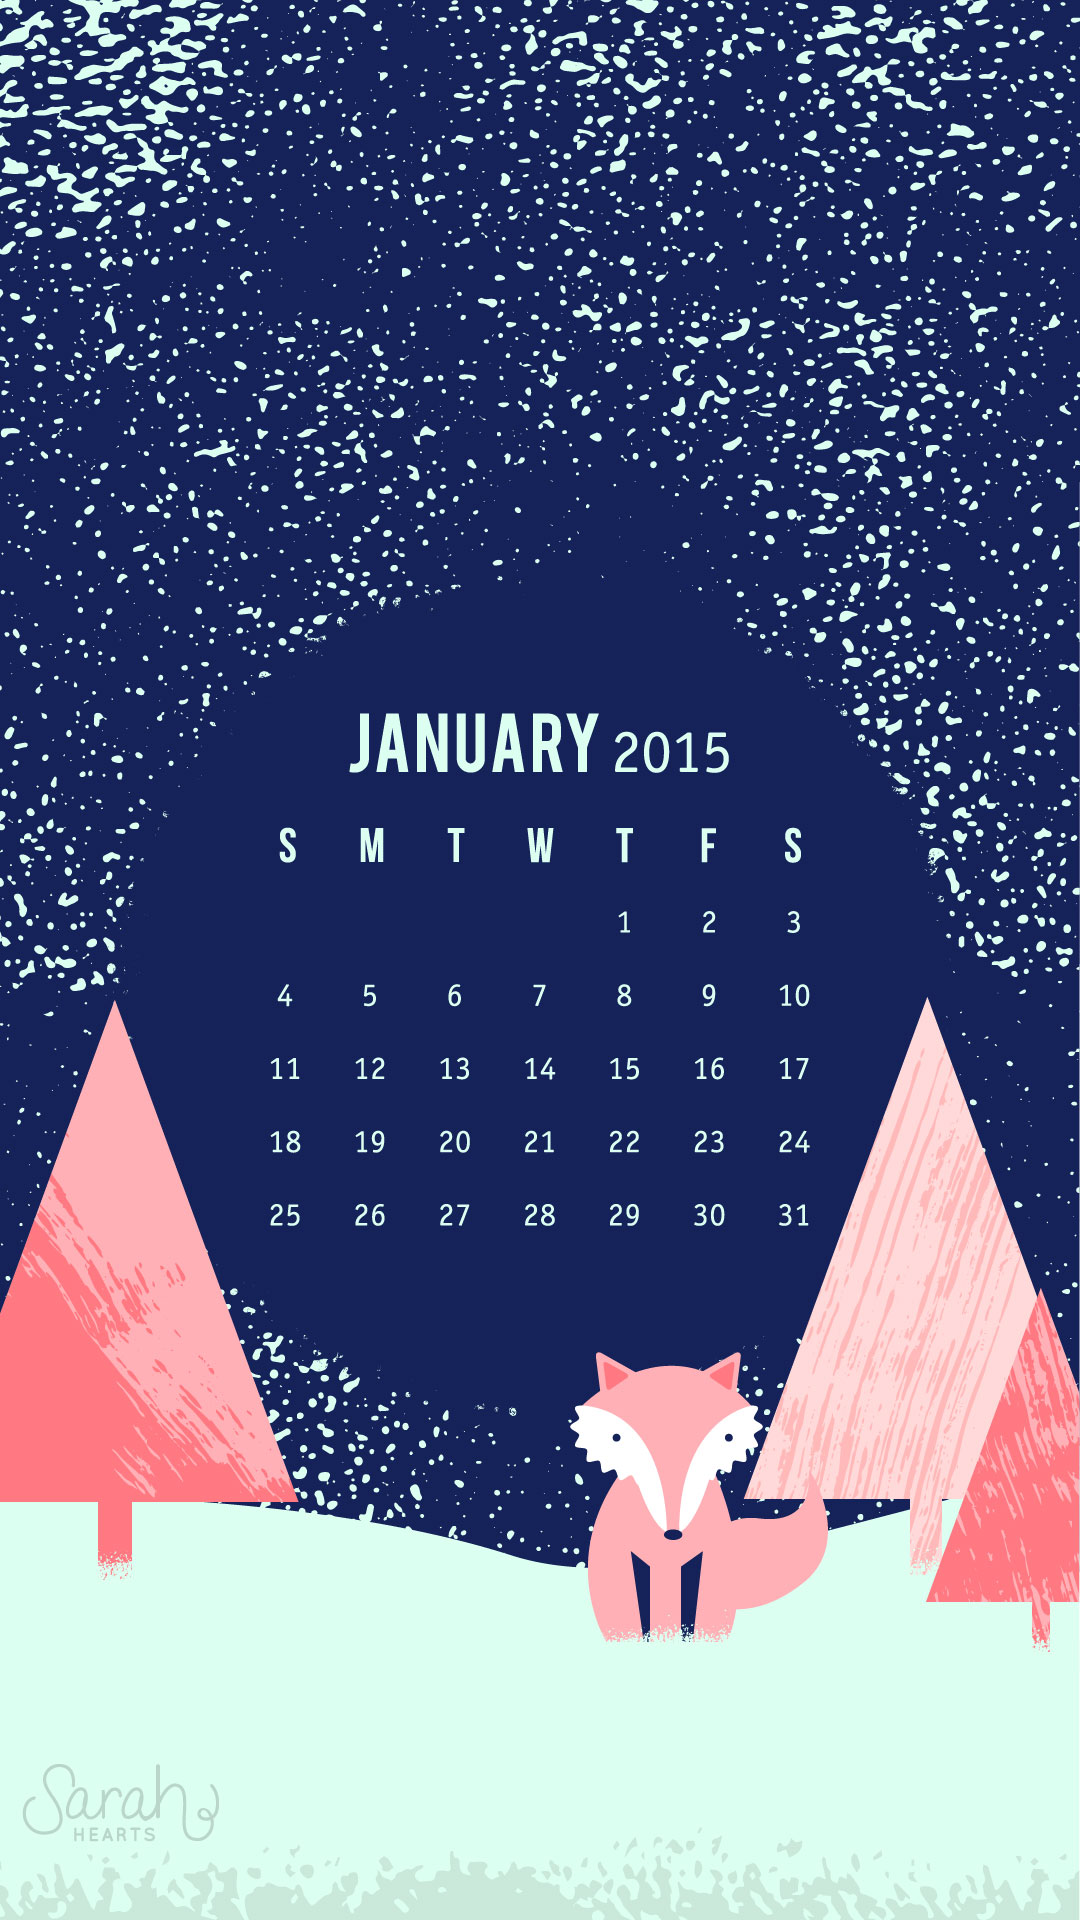 Quote Wallpapers For Iphone 6 Plus January 2015 Calendar Wallpaper Sarah Hearts